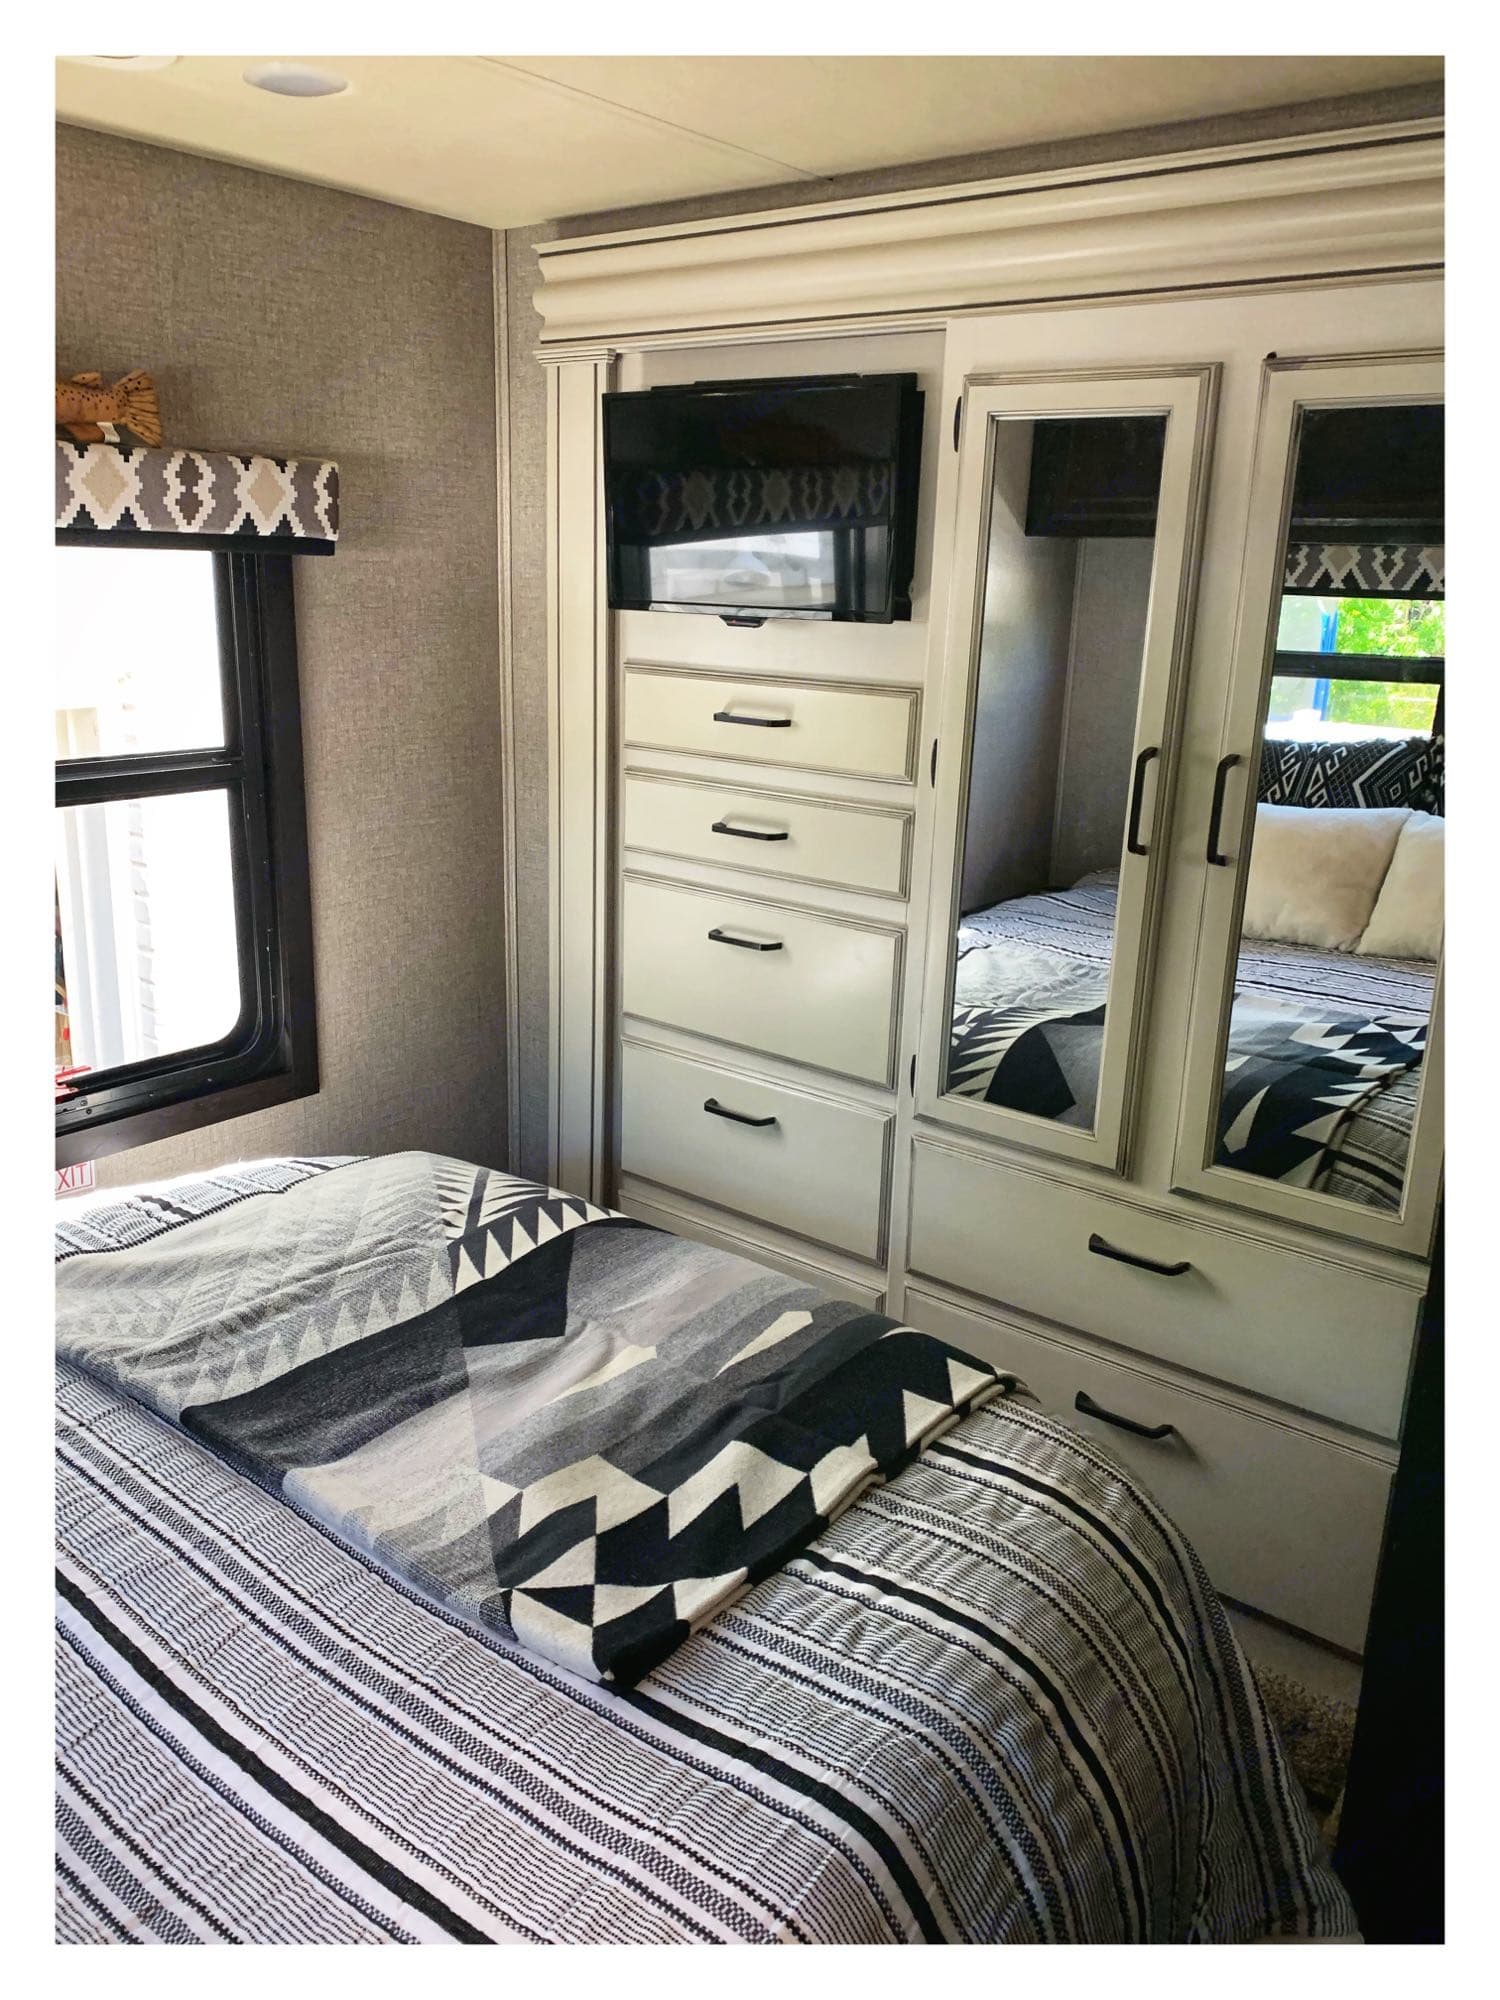 super cozy queen bed with foam topper, comforter, oversized pillows and Pendleton blanket, TV and plenty of storage. Jayco Greyhawk 2020